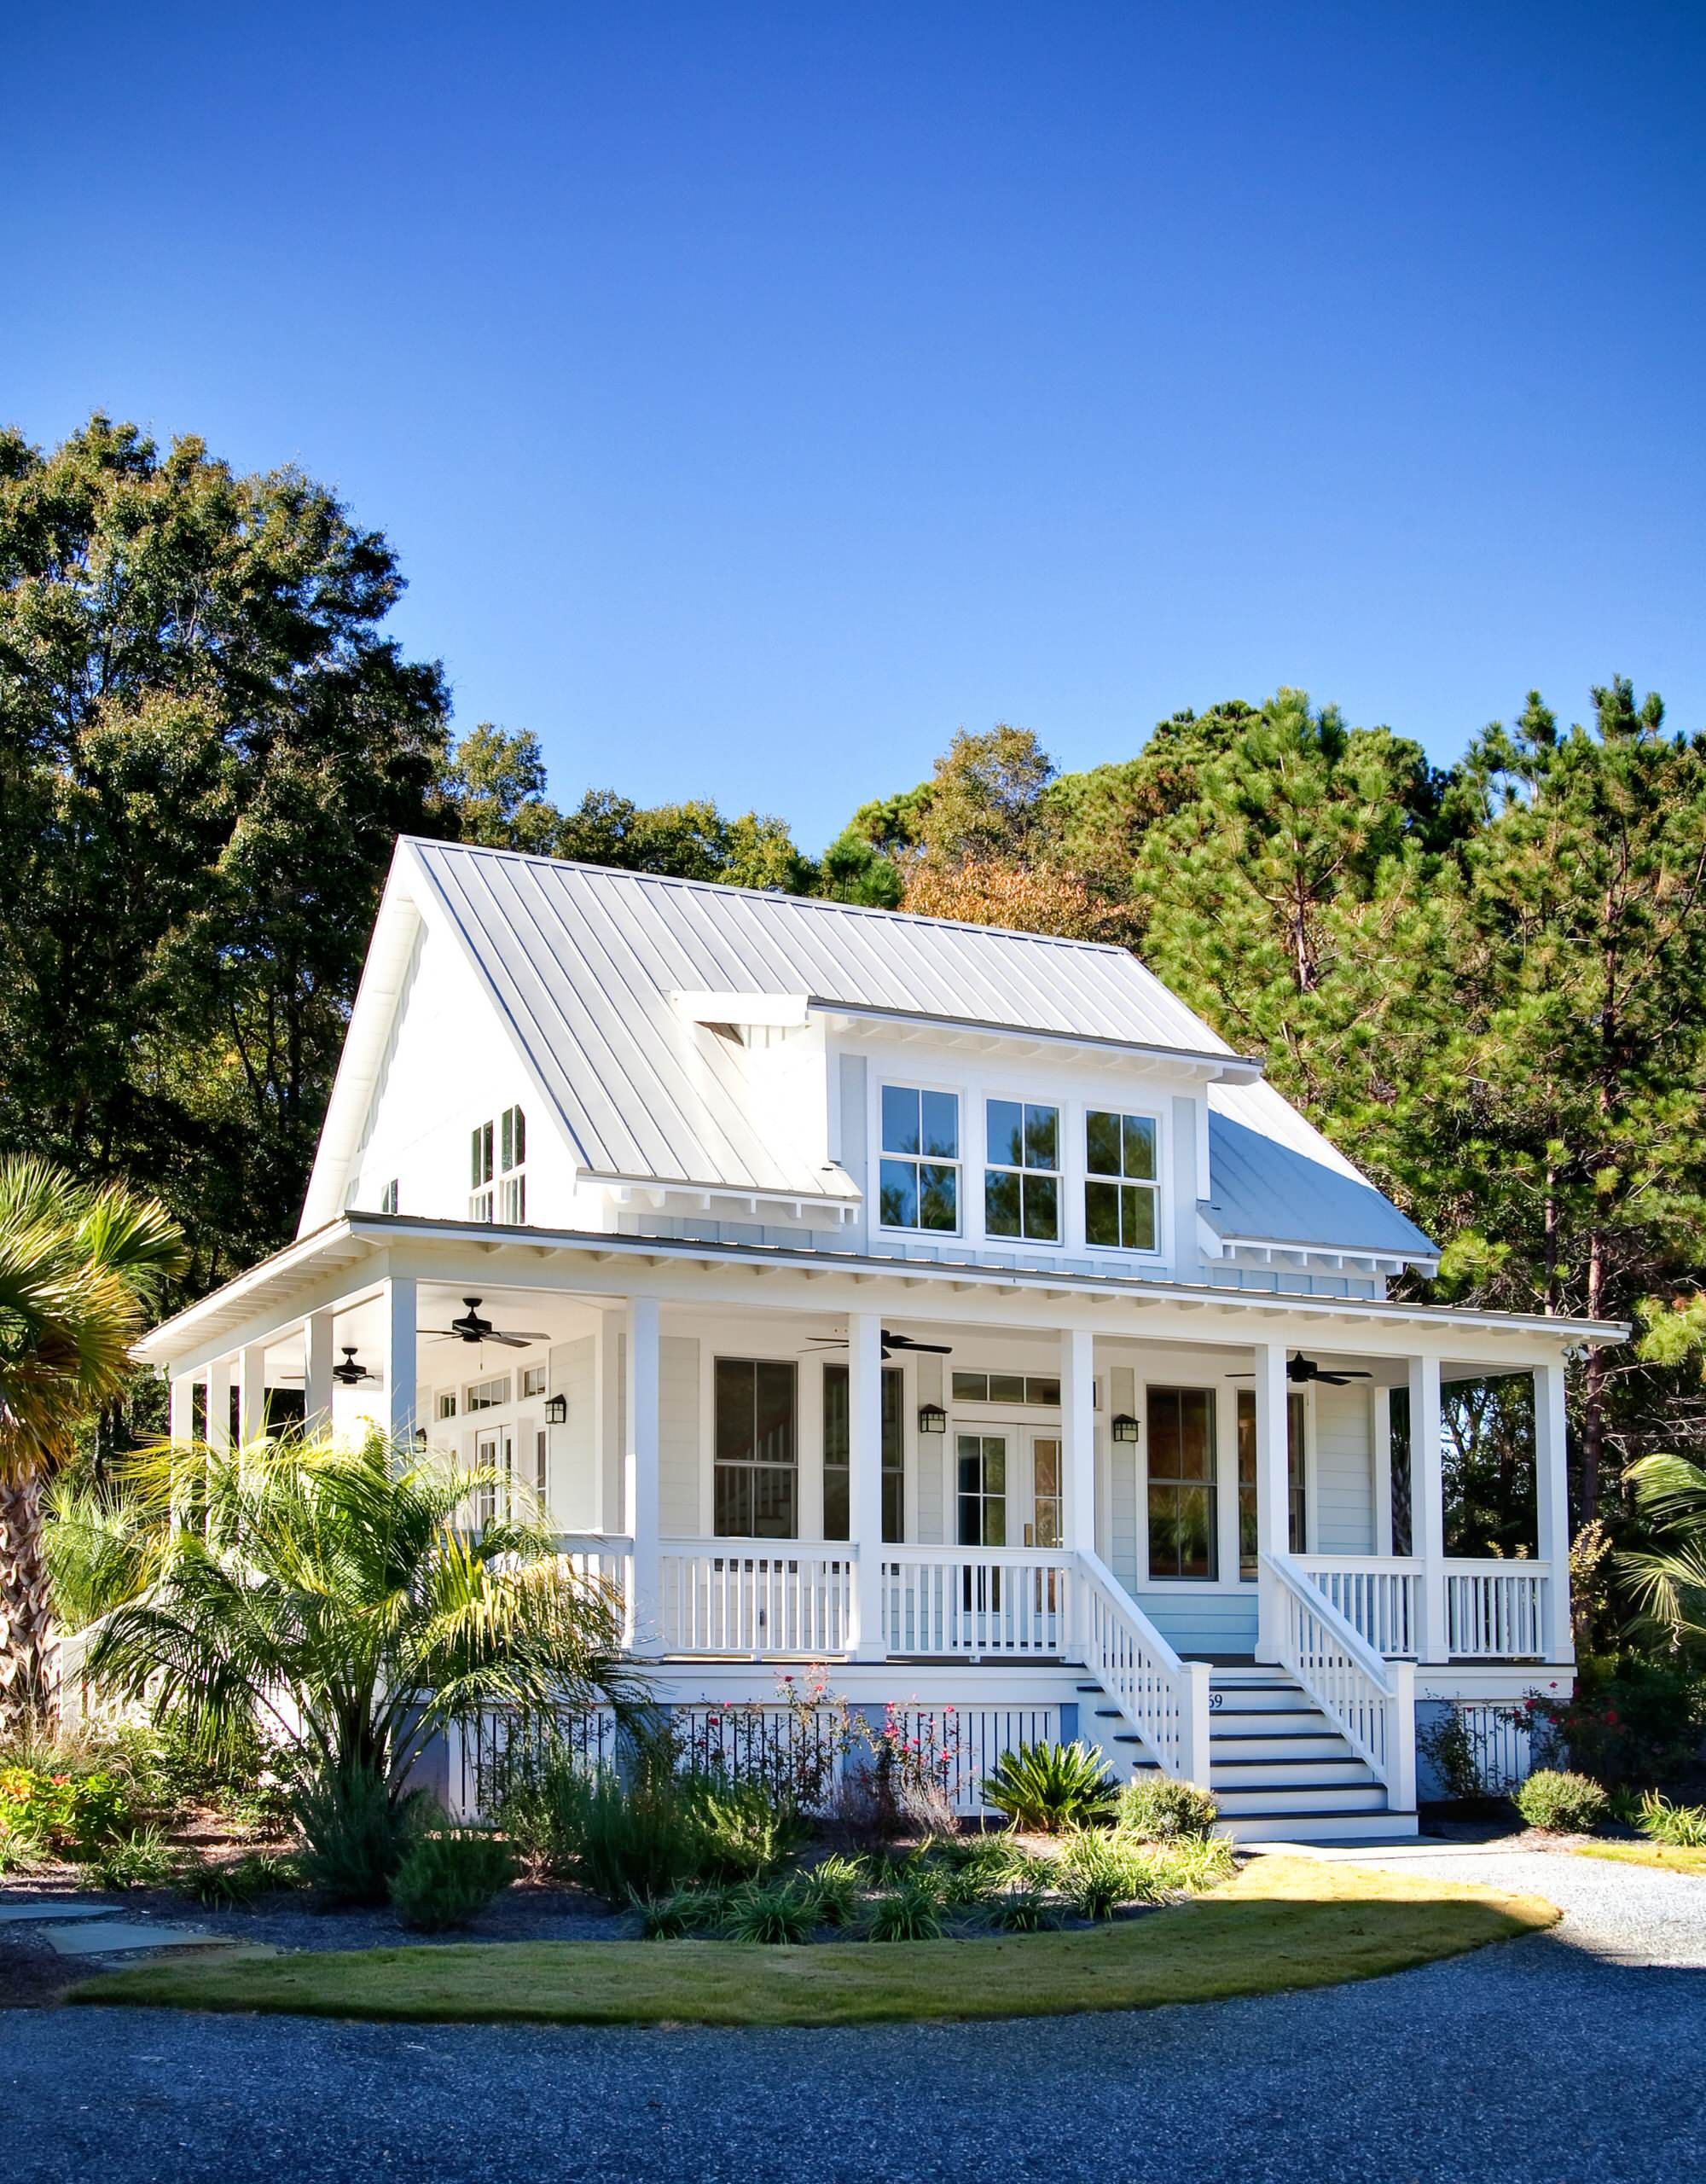 75 Beautiful Exterior Home Pictures Ideas April 2021 Houzz